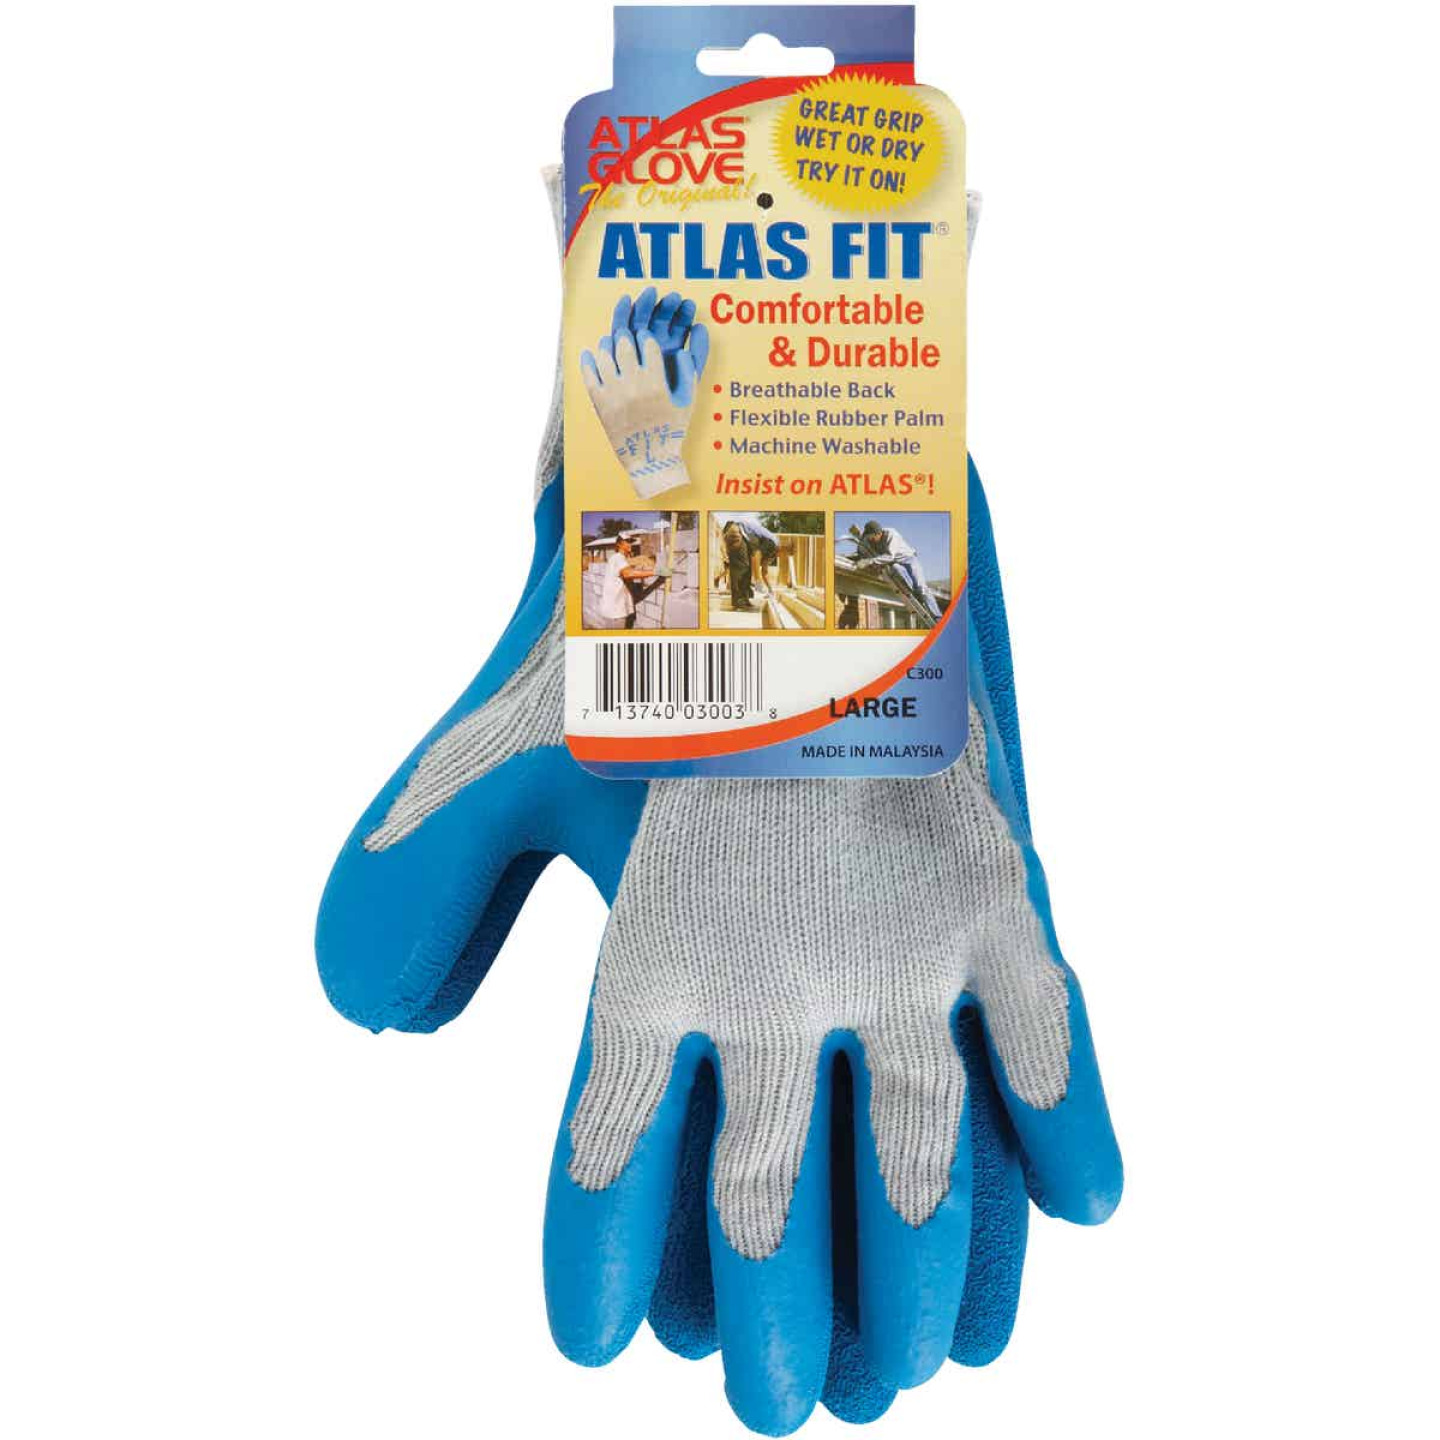 Showa Atlas Men's Small Rubber Coated Glove Image 2